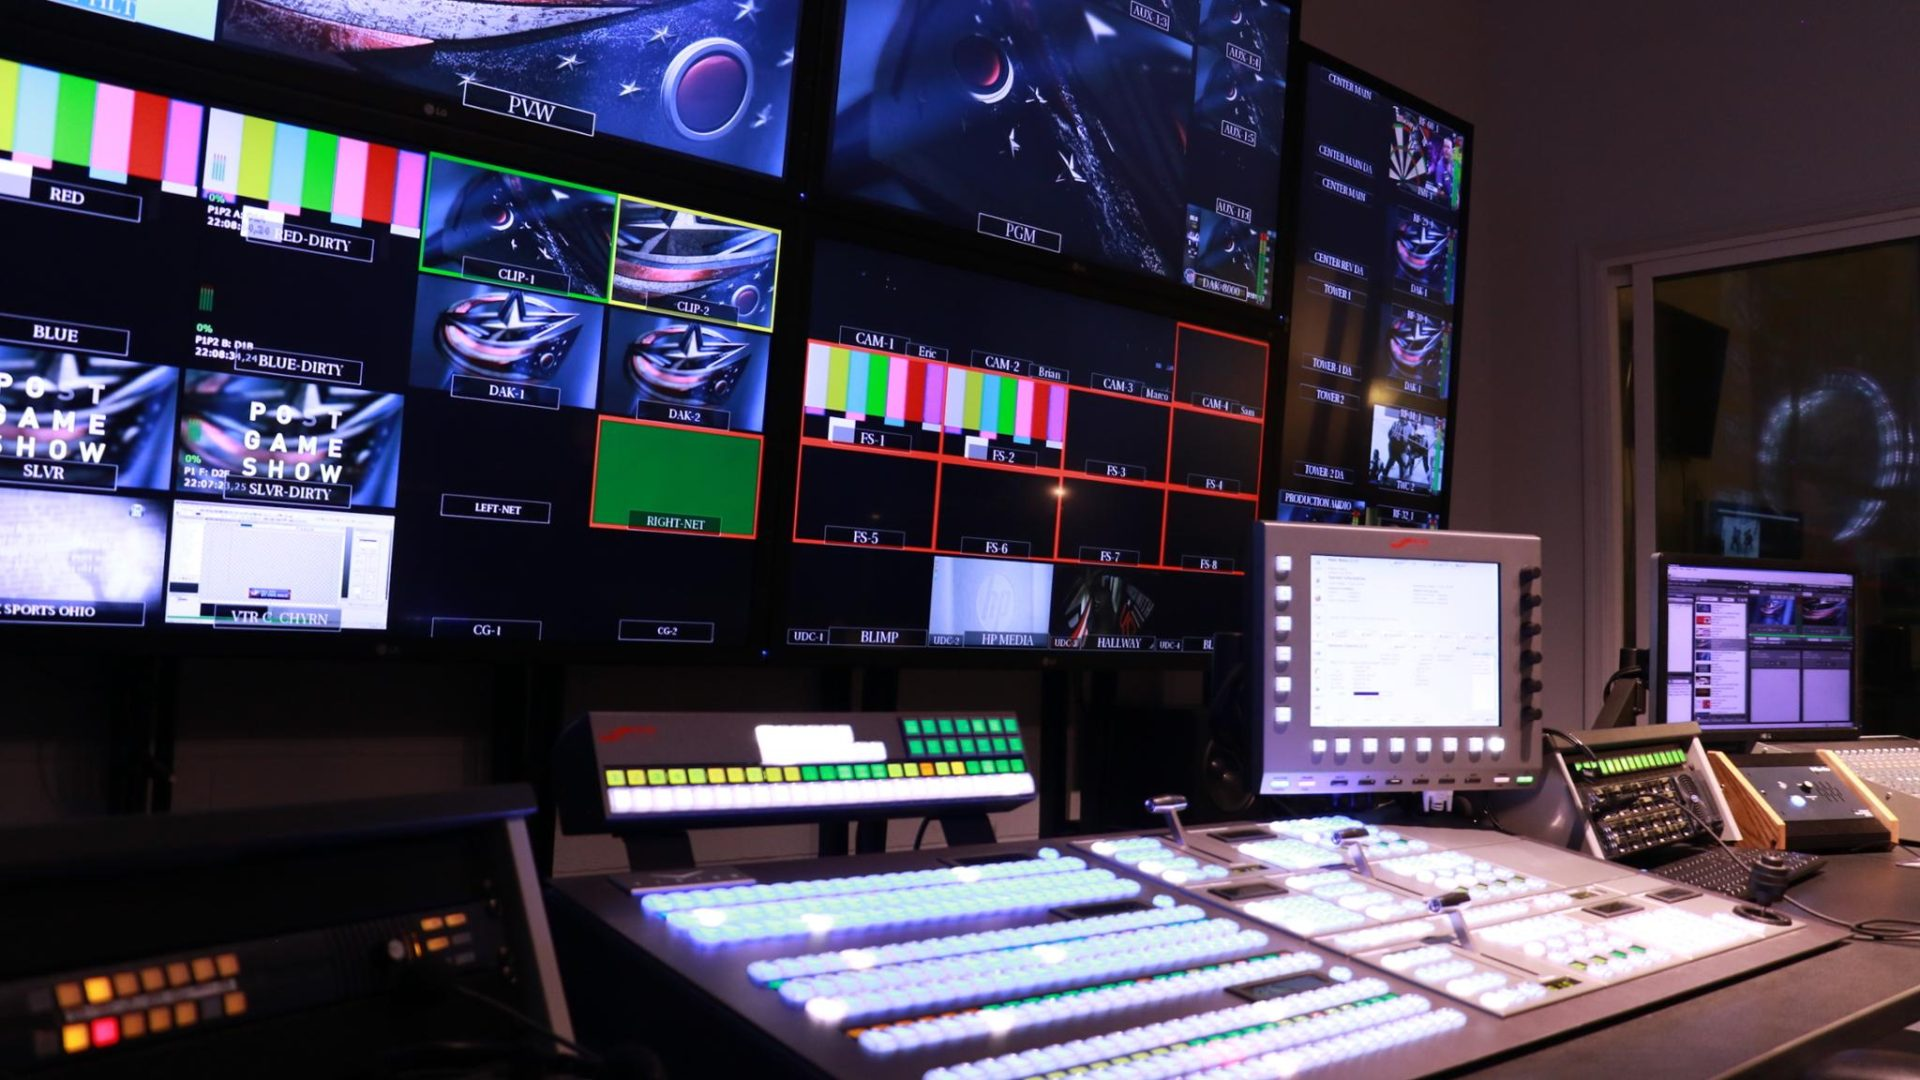 AV, Audio Visual, Video Replay Control Room, Broadcast